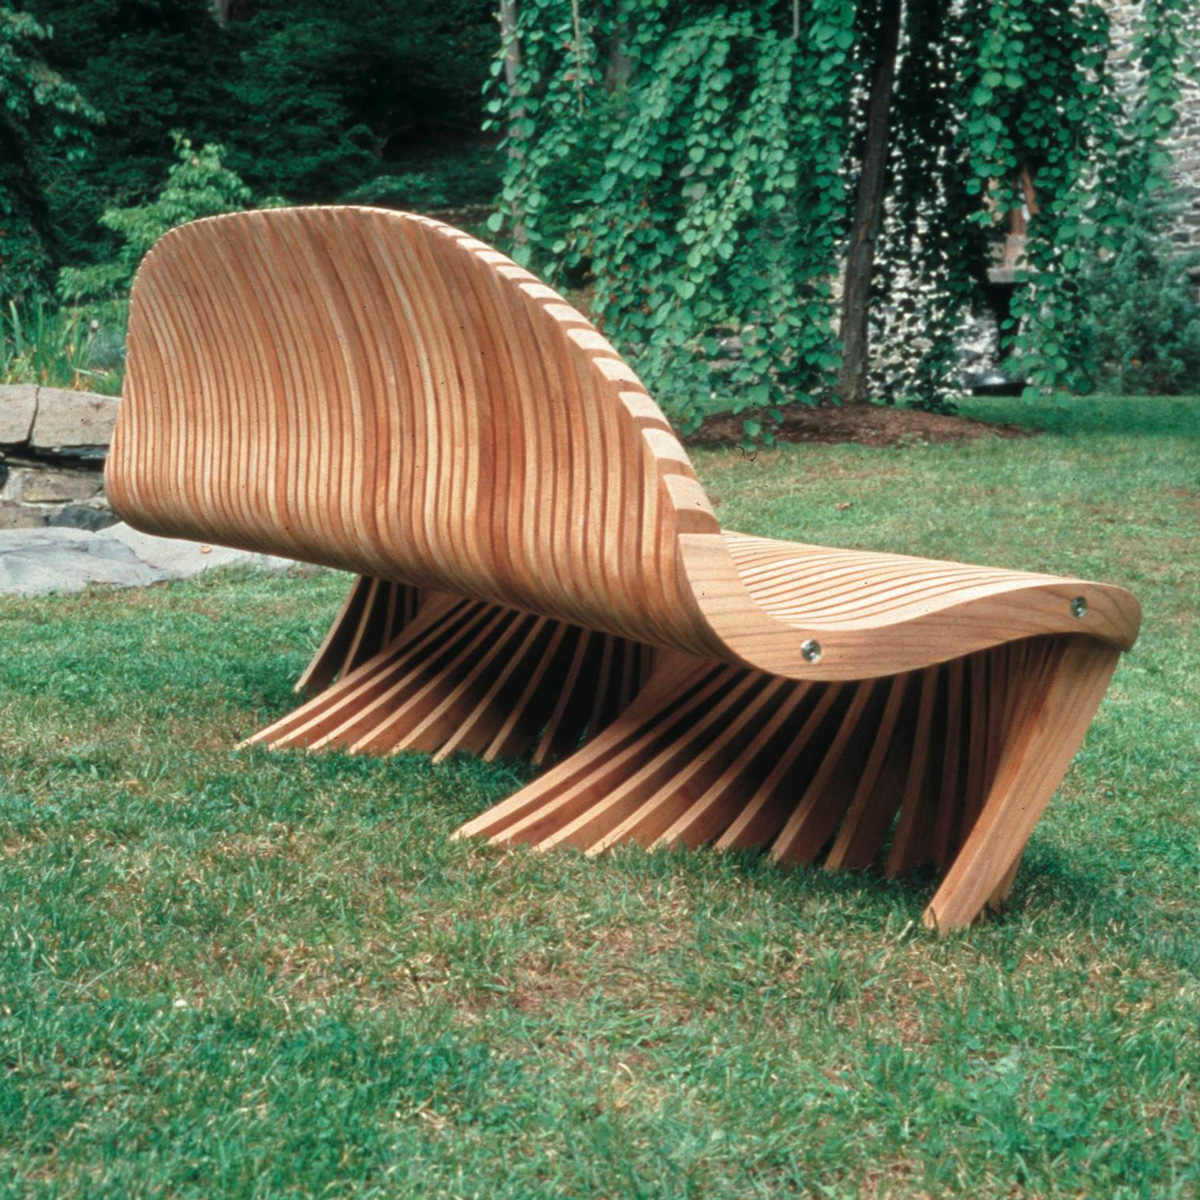 spirit song teak bench - Teak Bench